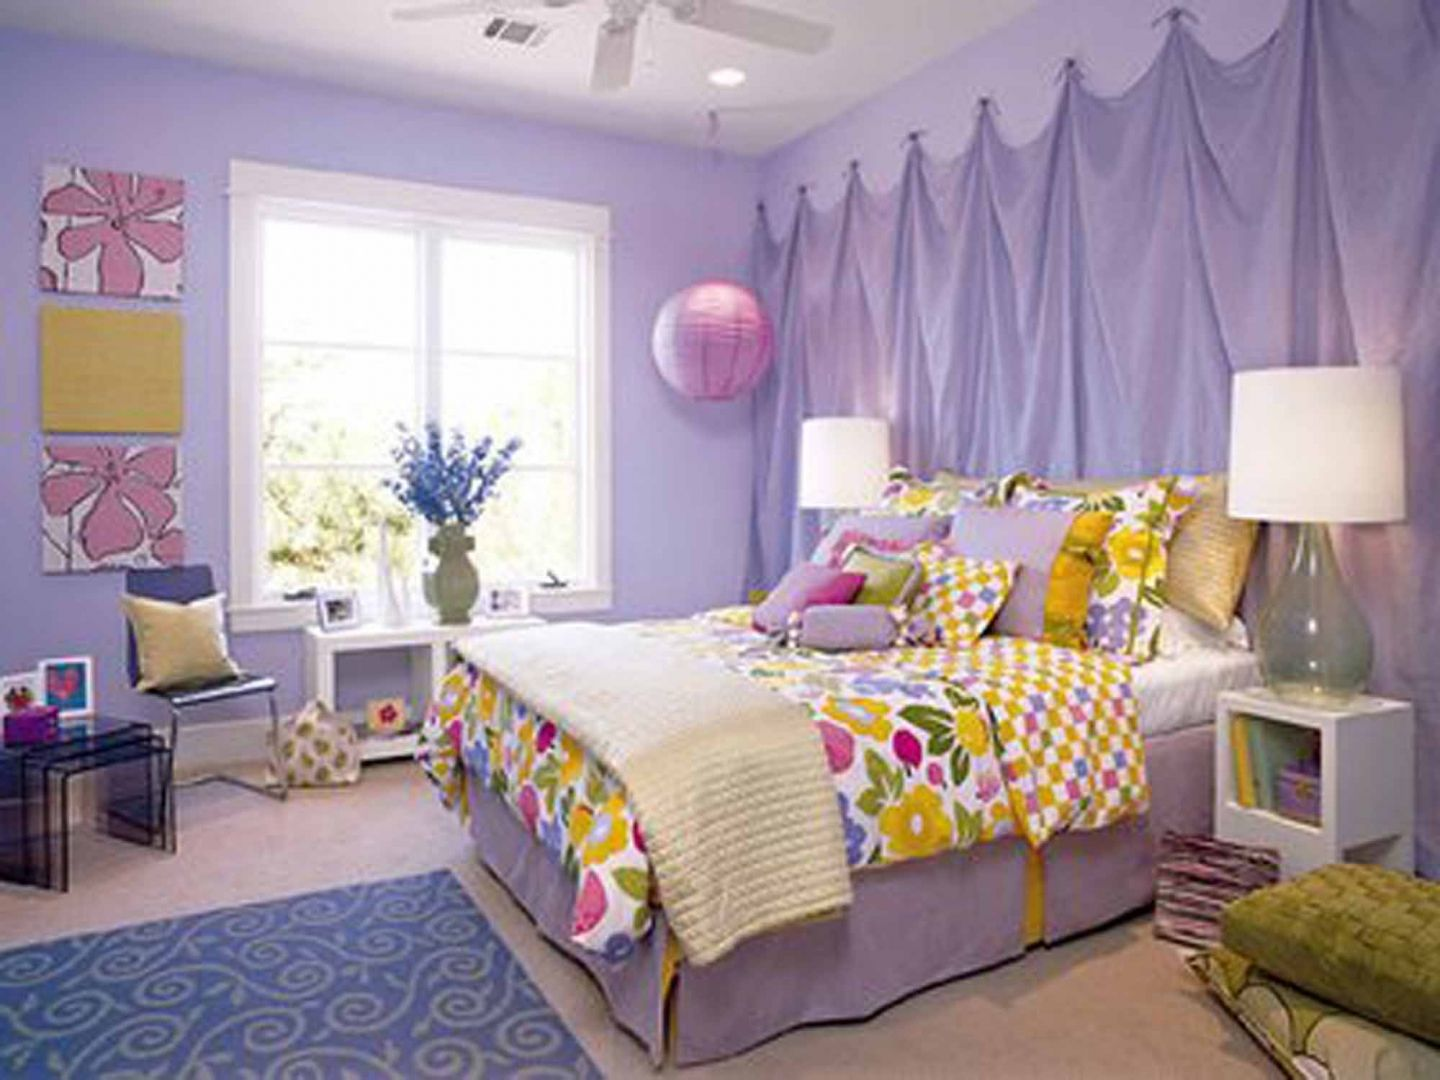 lilac bedroom walls lavender wall paint color and colorful bed cover and